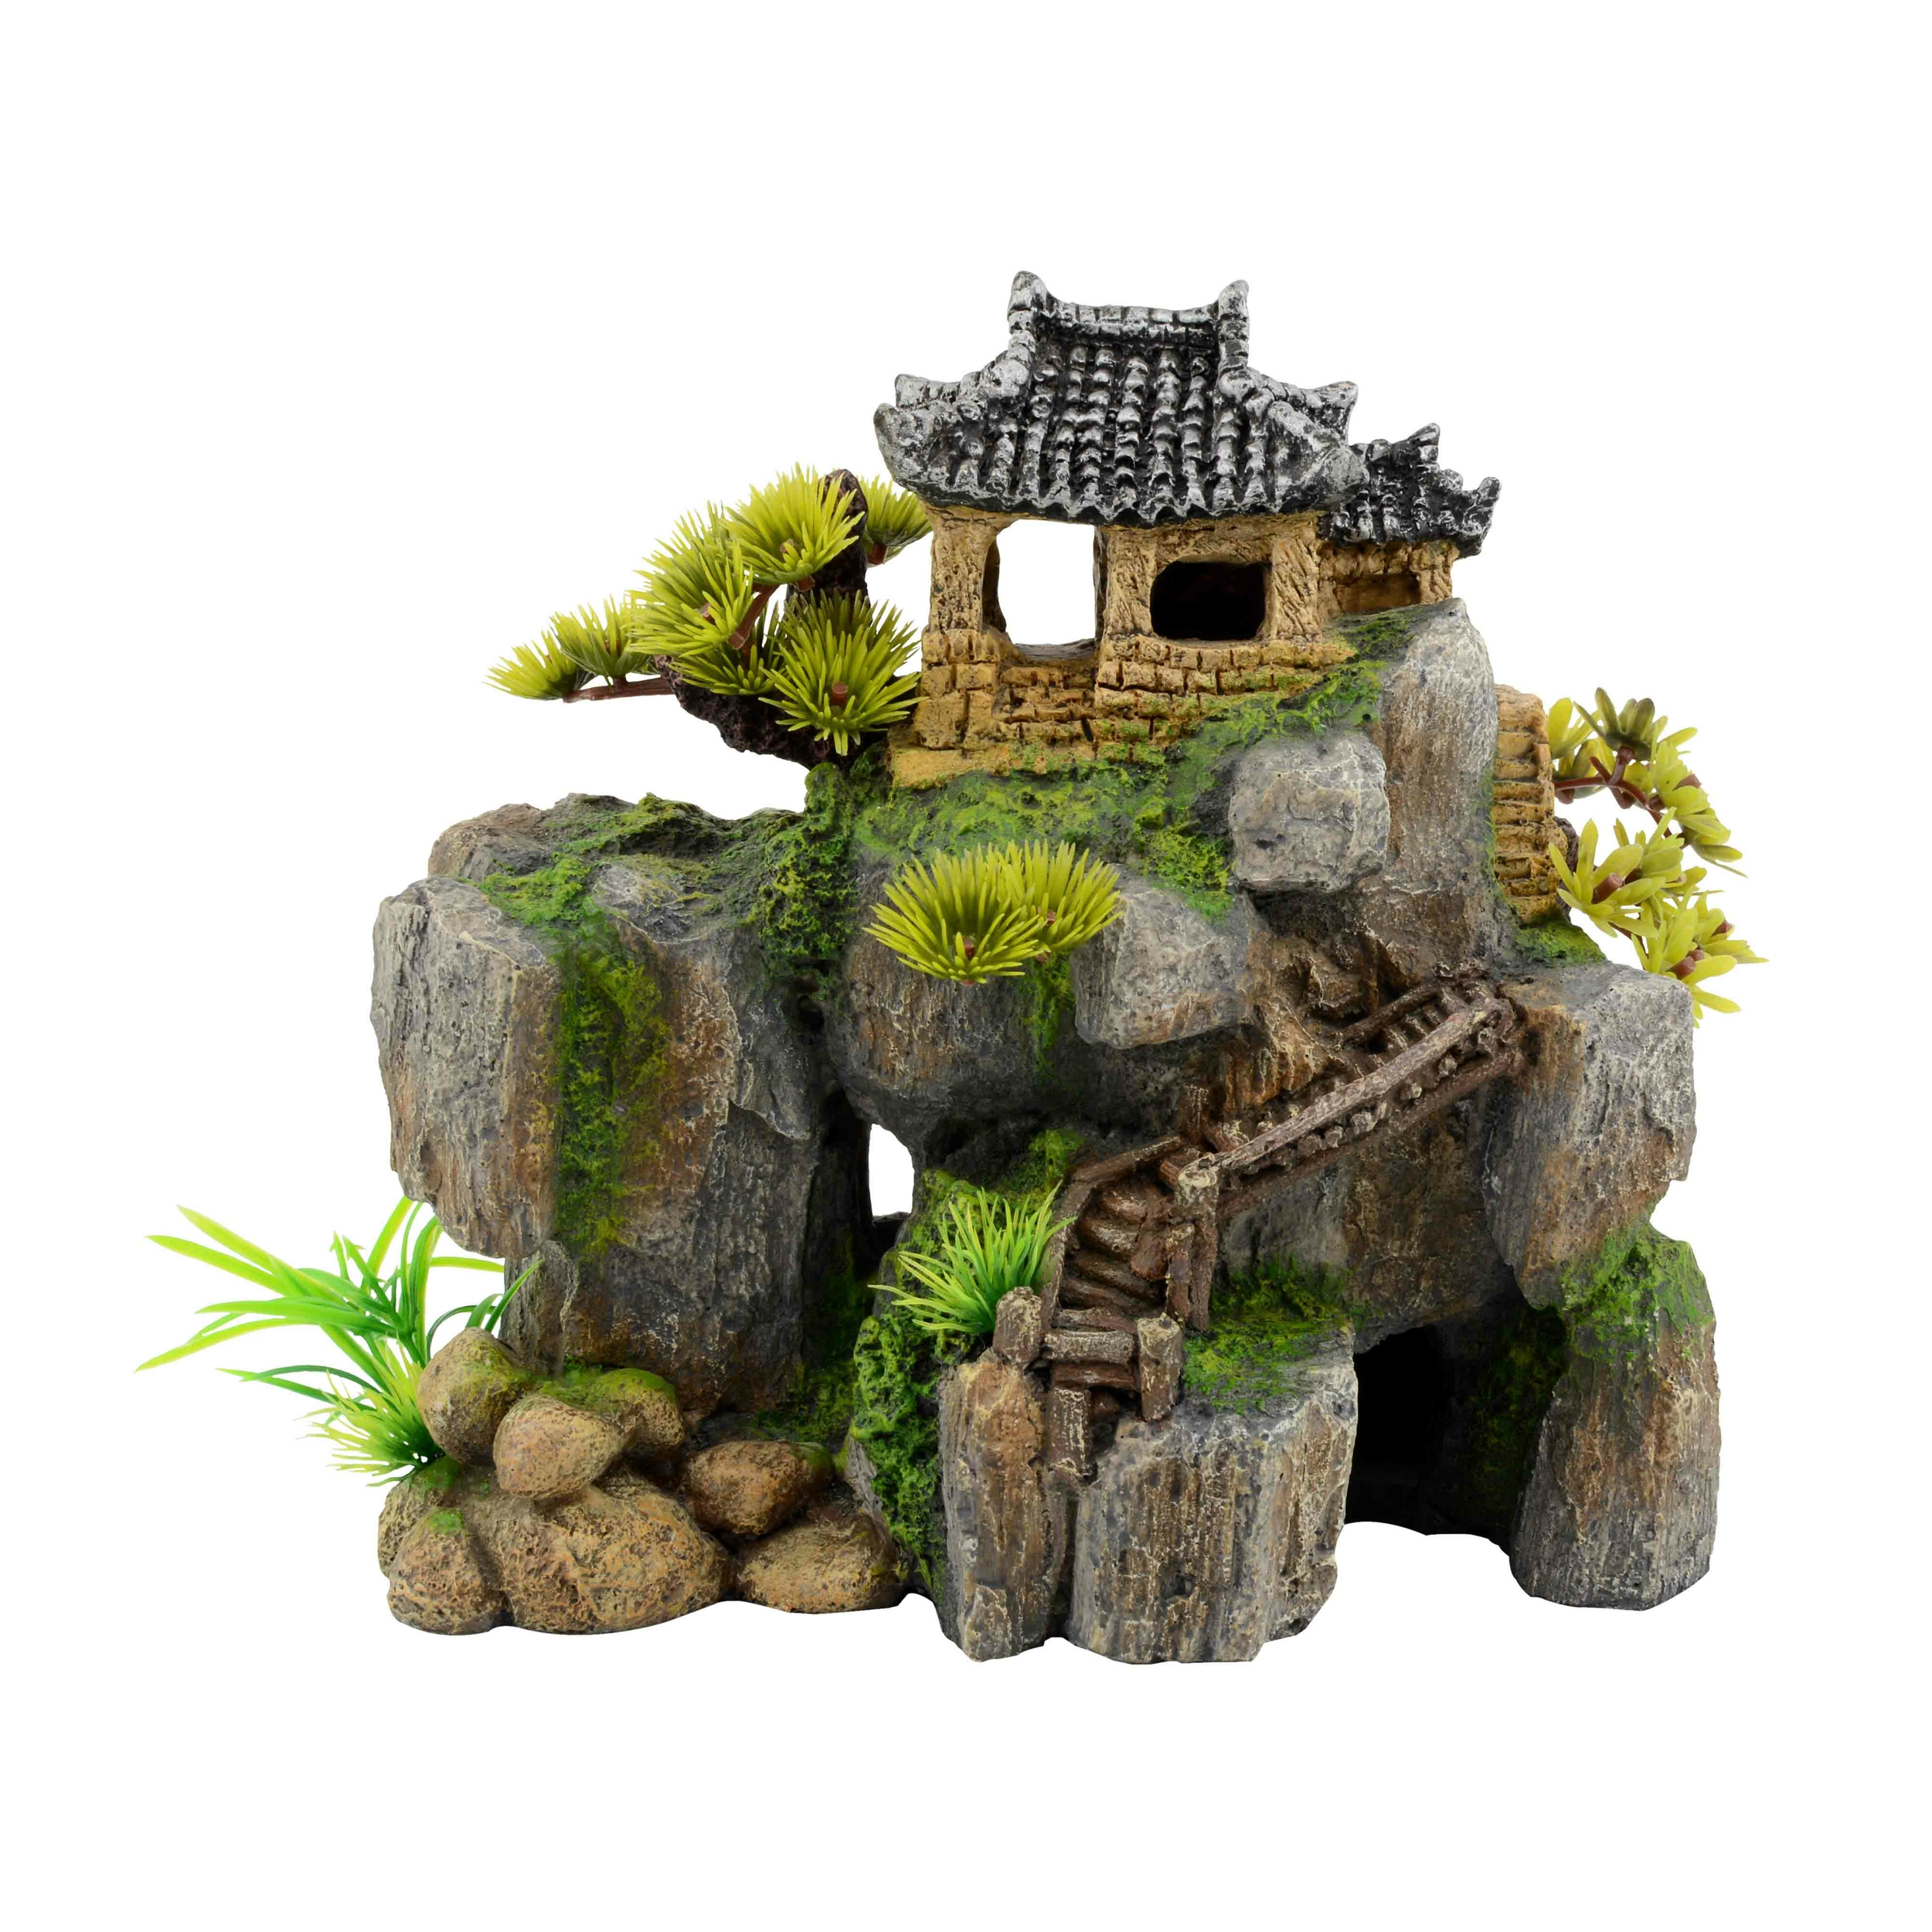 AQUAVIE Habitat Asia House décoration aquarium 28 x 18 x 24,5 cm